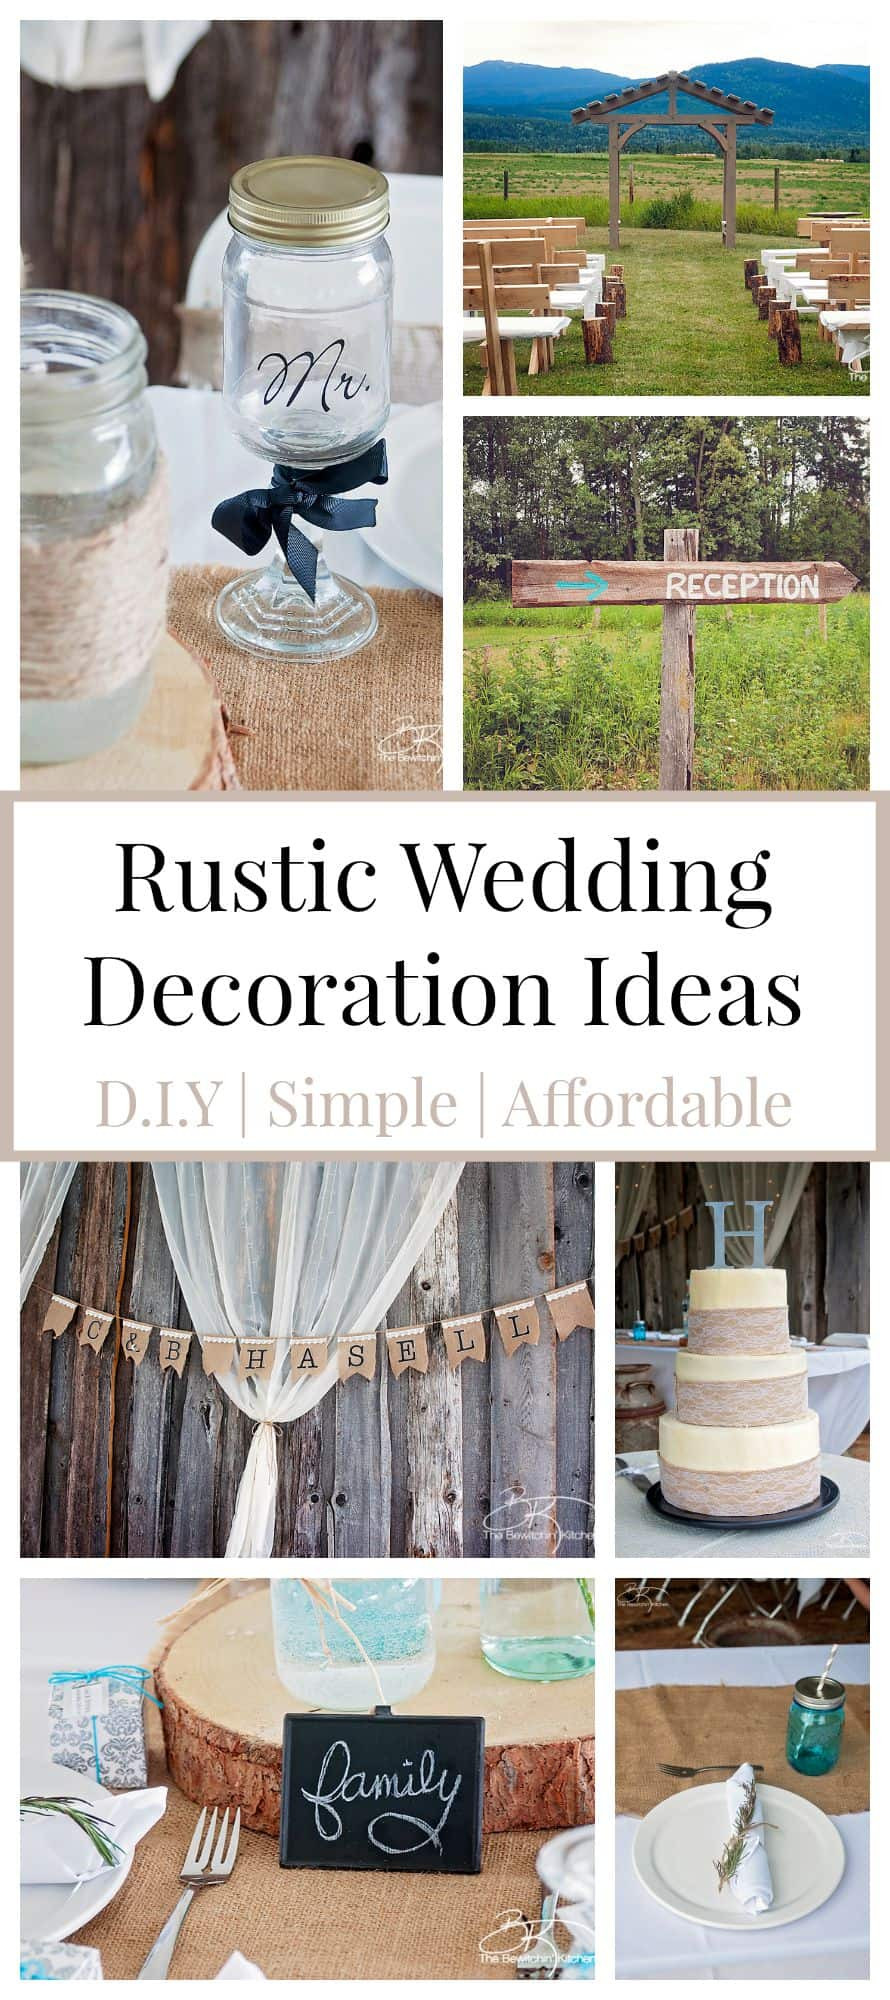 Best ideas about DIY Country Wedding . Save or Pin Rustic Wedding Ideas That Are DIY & Affordable Now.